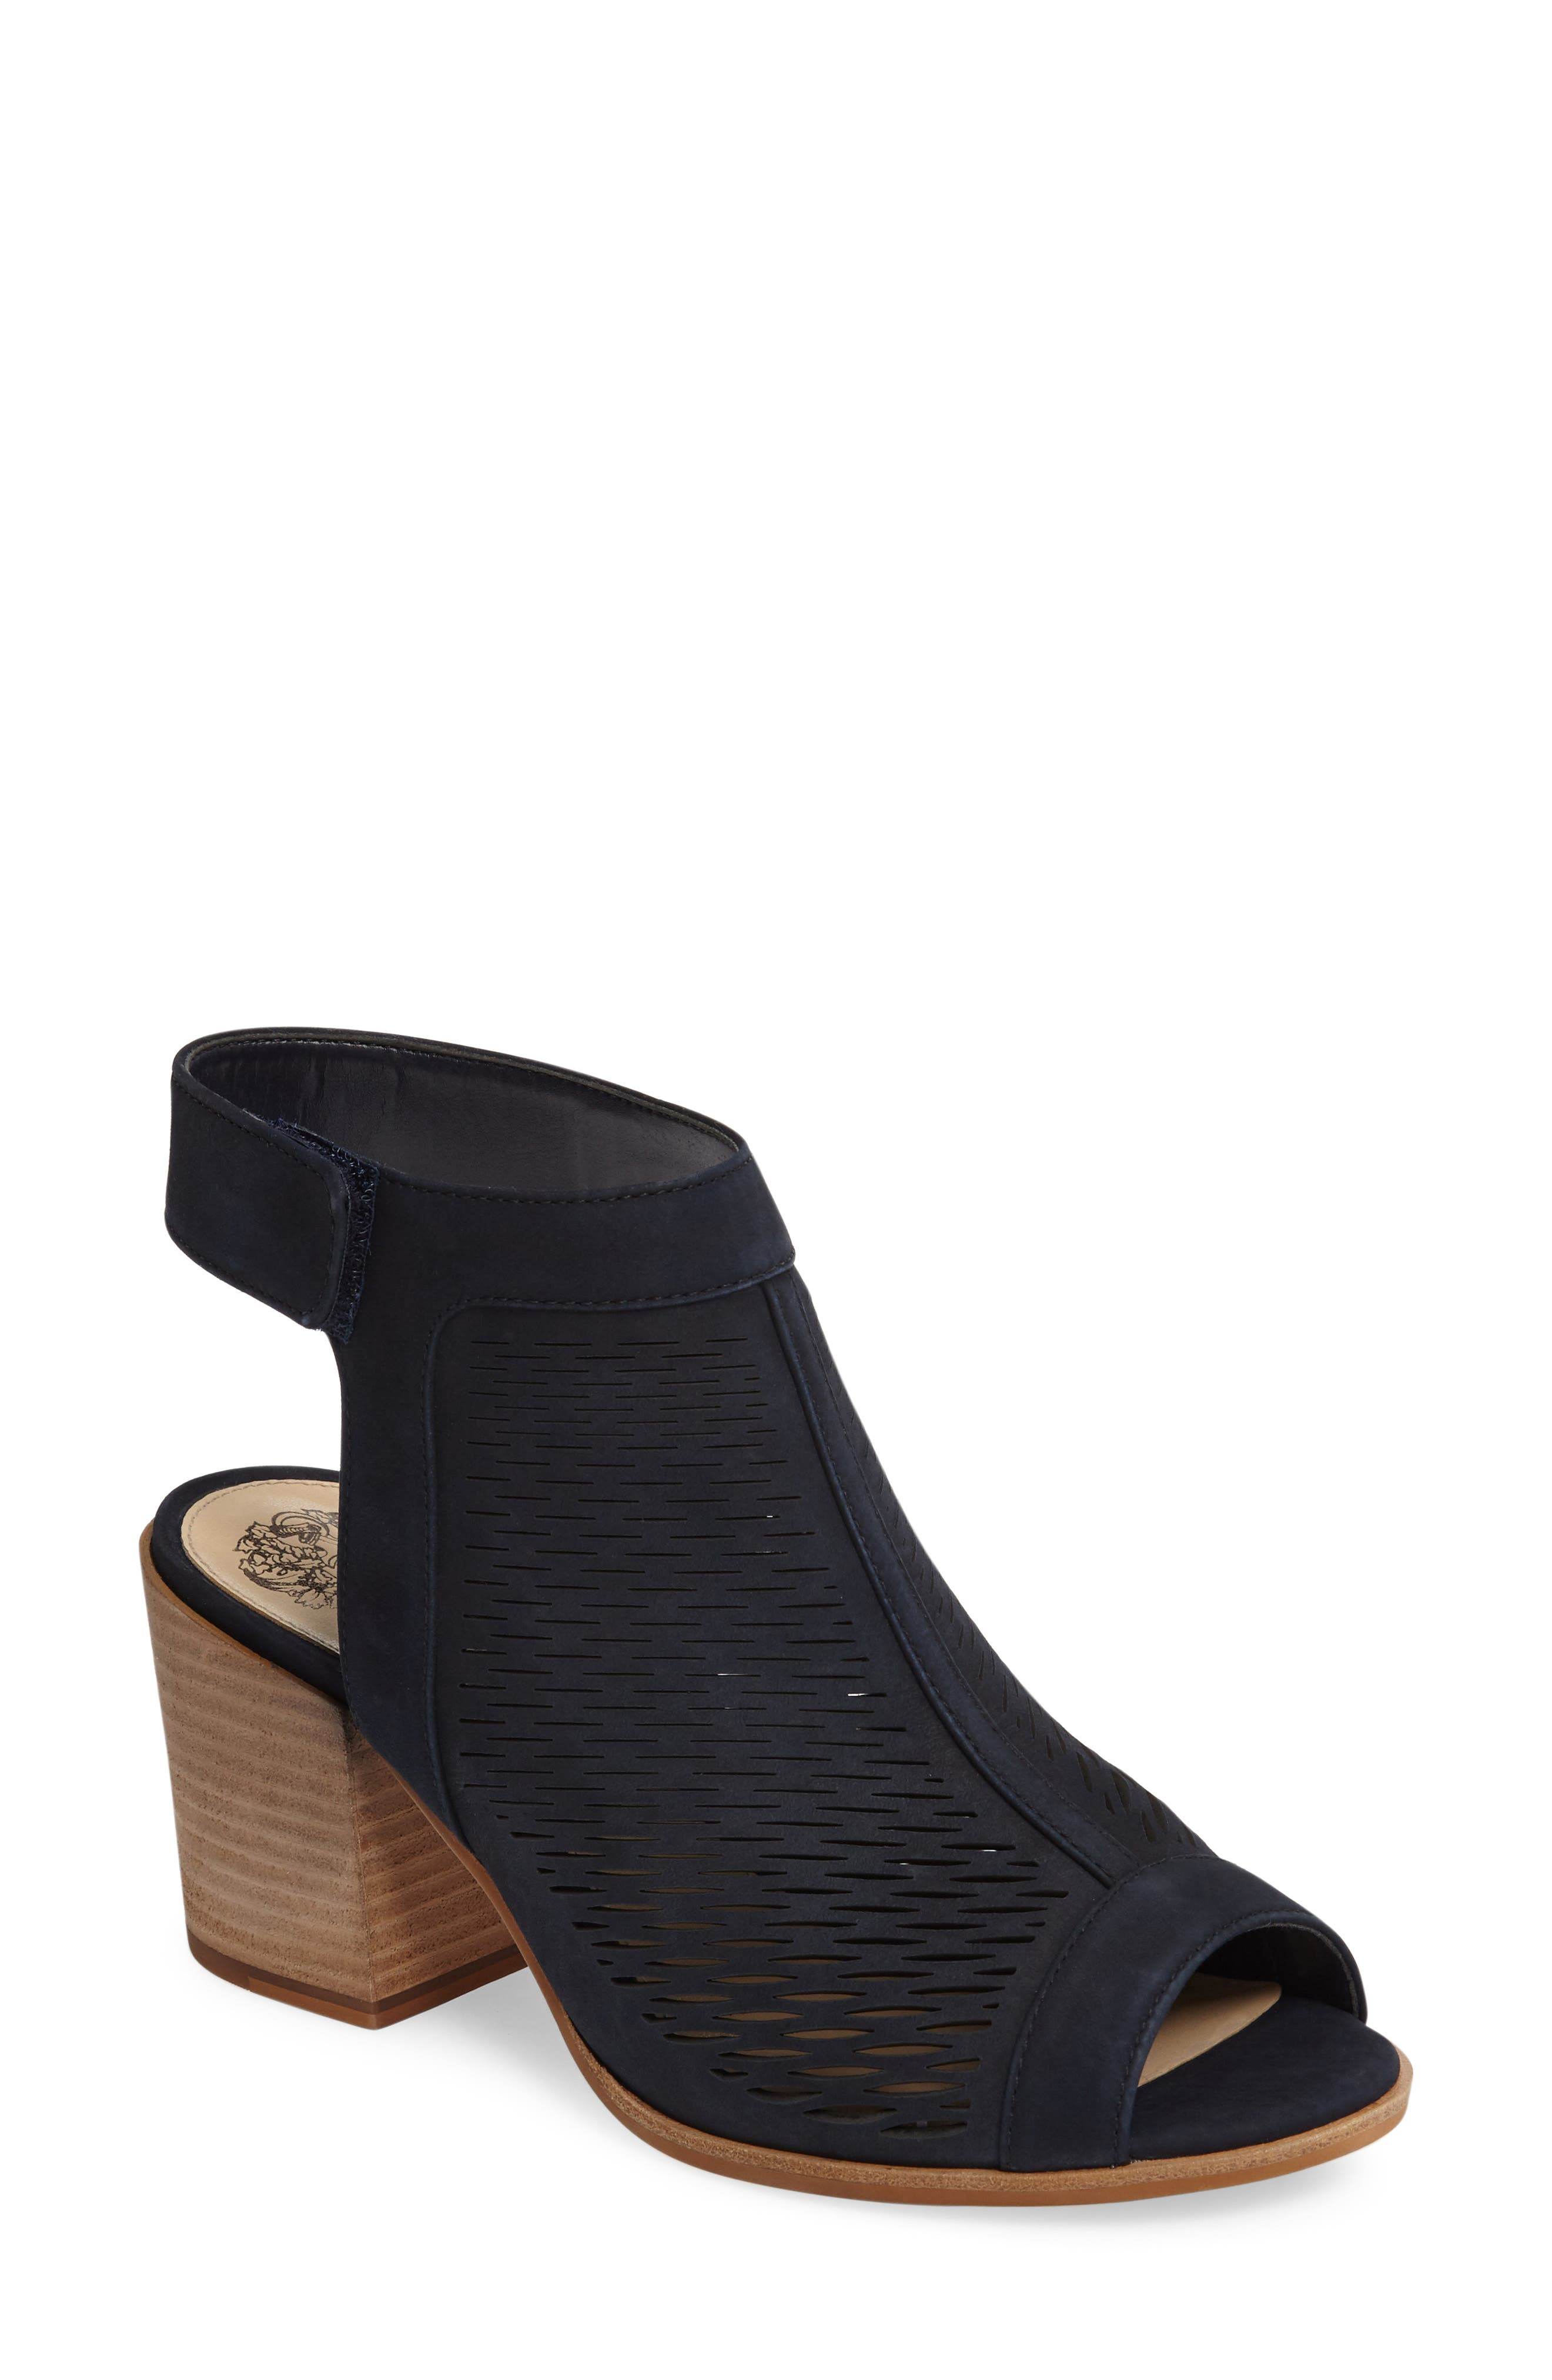 'Lavette' Perforated Peep Toe Bootie,                             Main thumbnail 5, color,